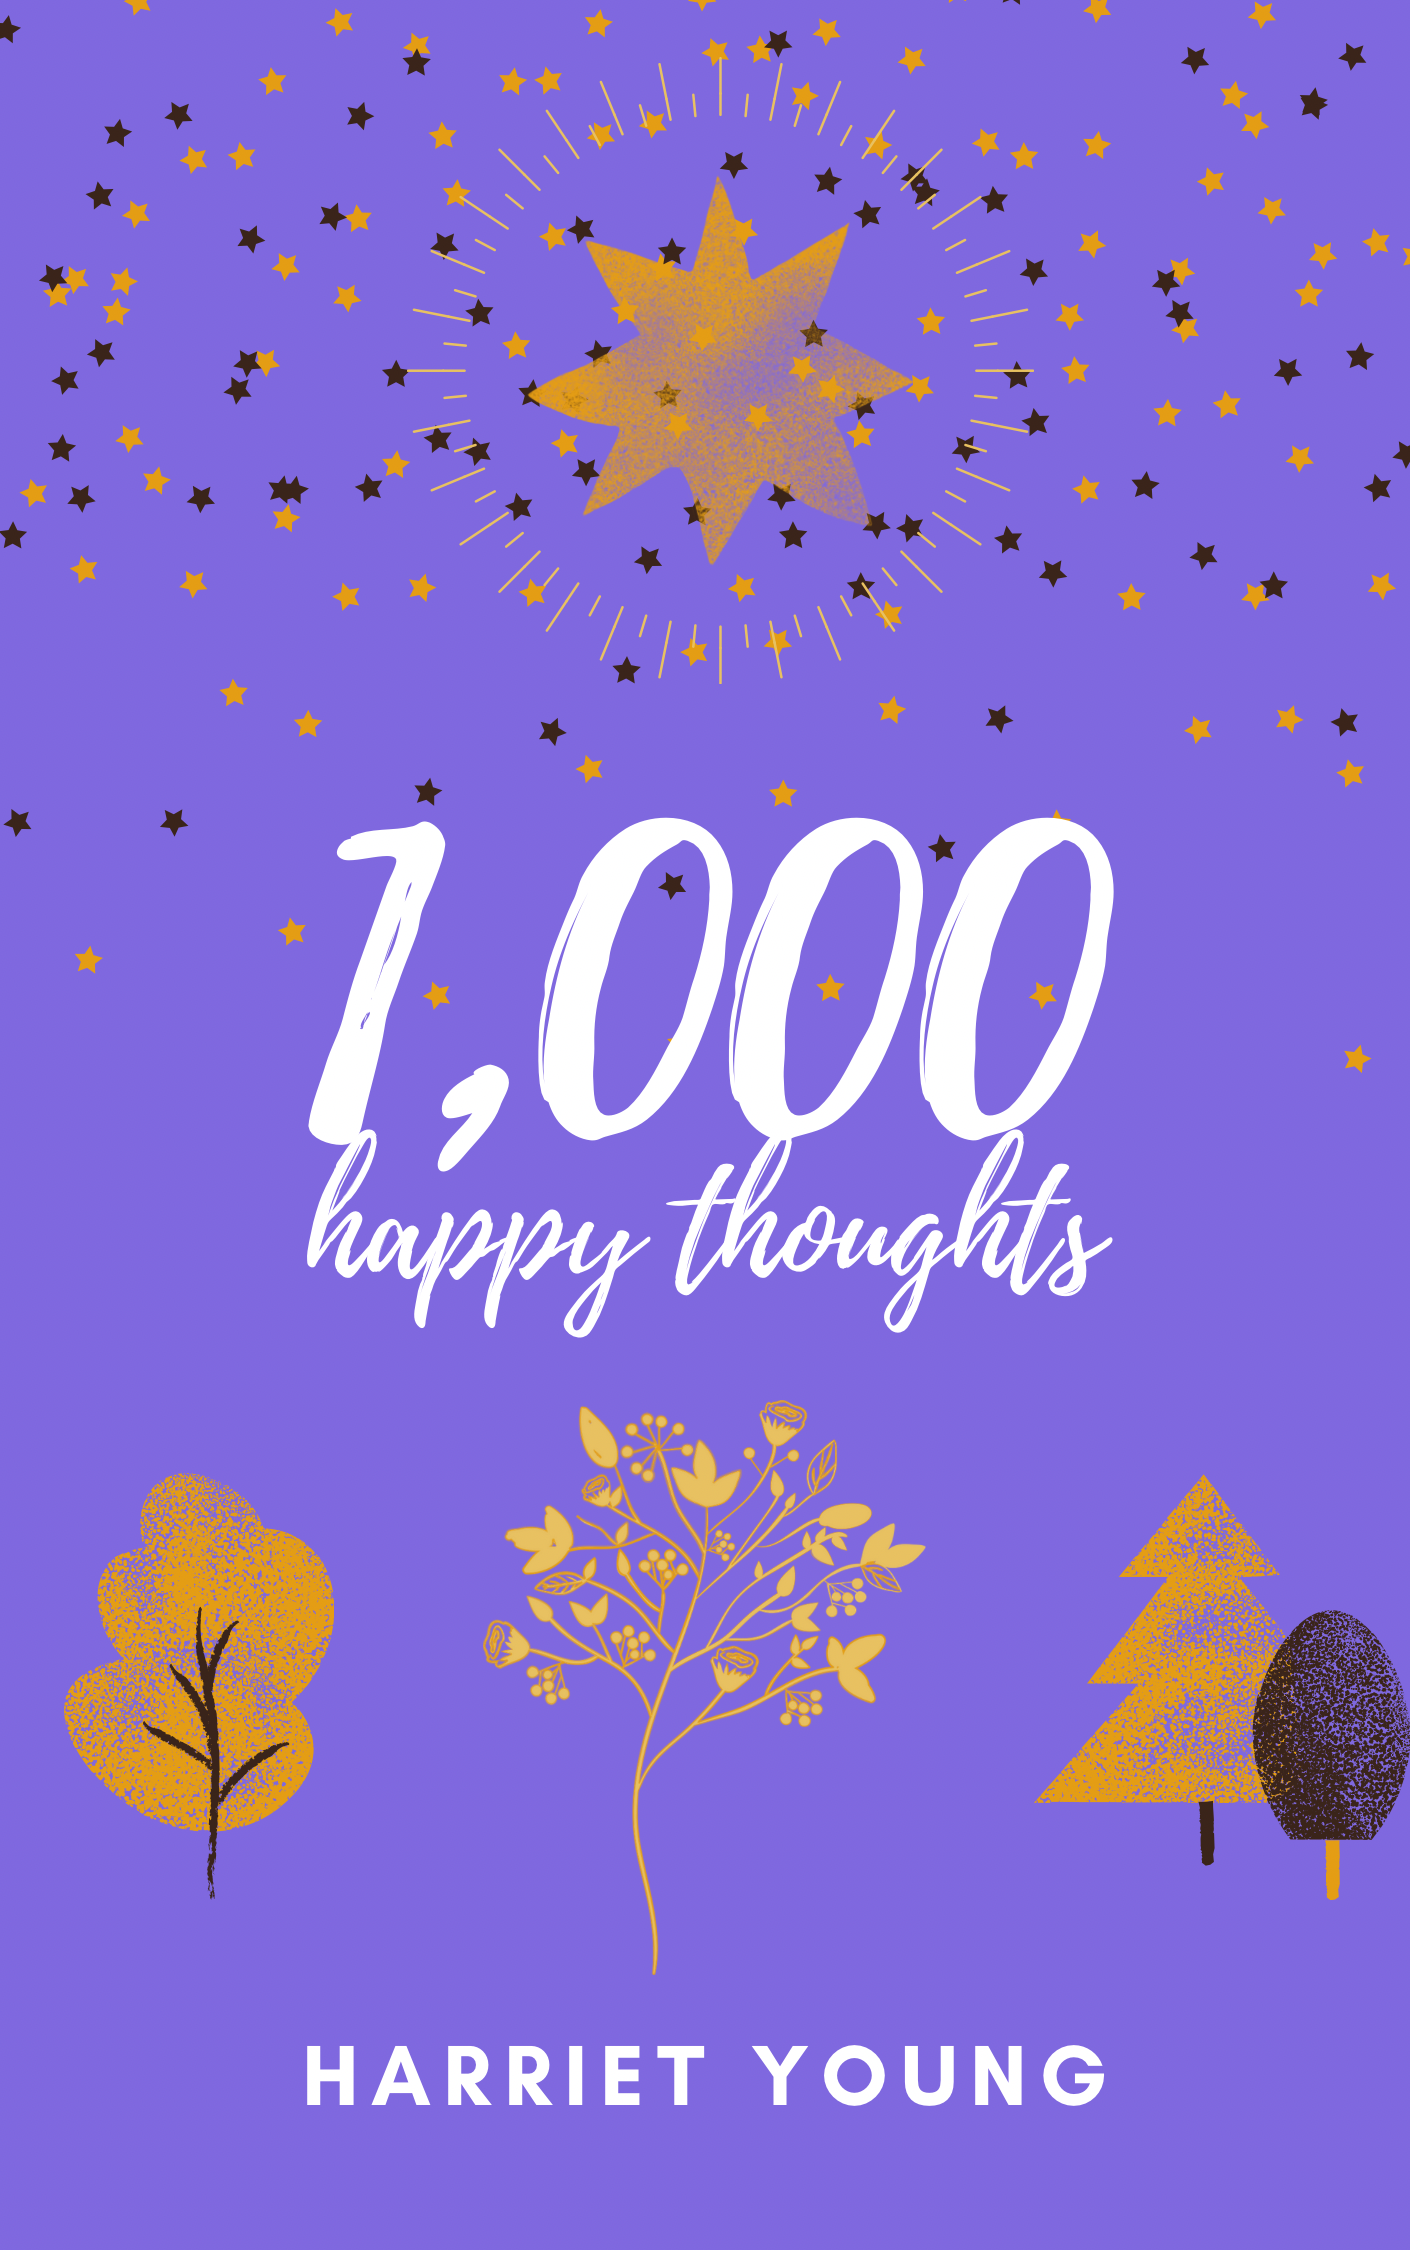 1,000 Happy Thoughts by Harriet Young